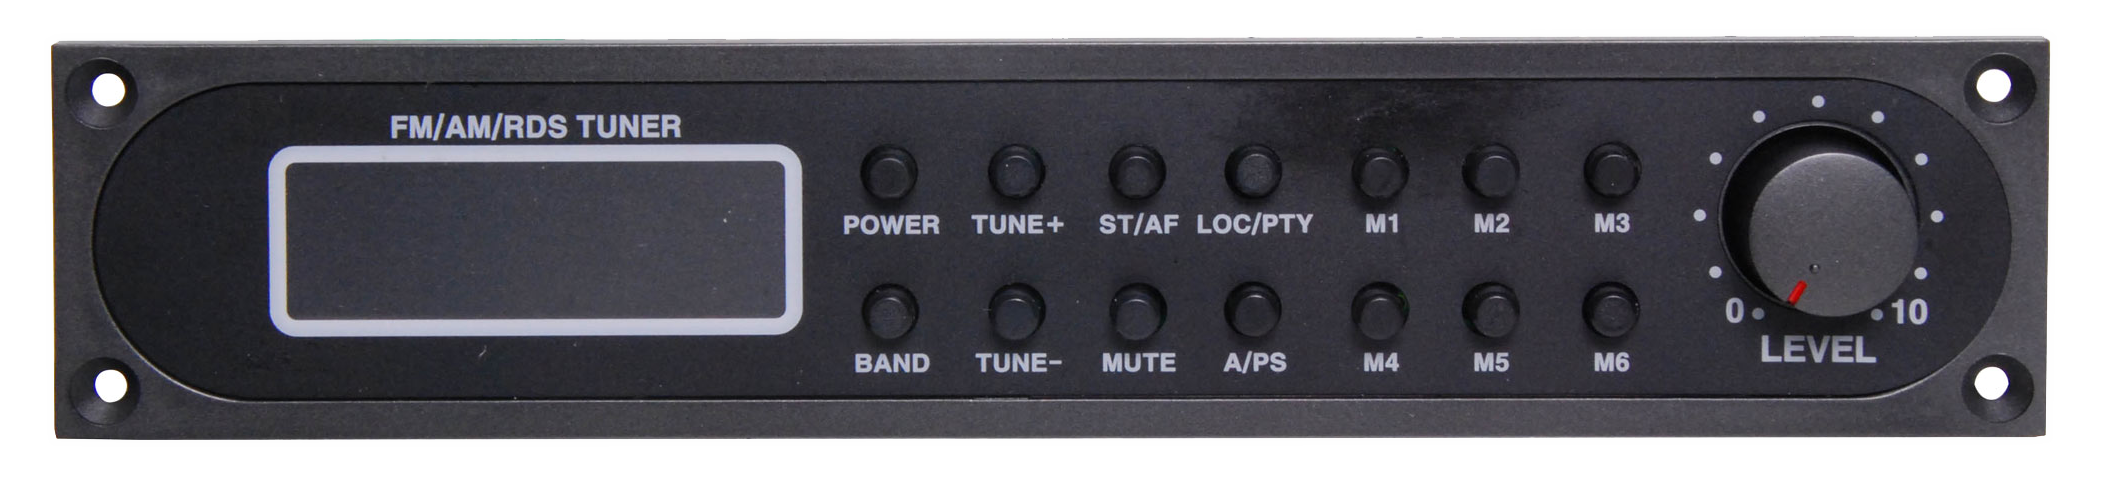 redback-a4344a-am-fm-tuner-module-to-suit-a-4320-4336.png